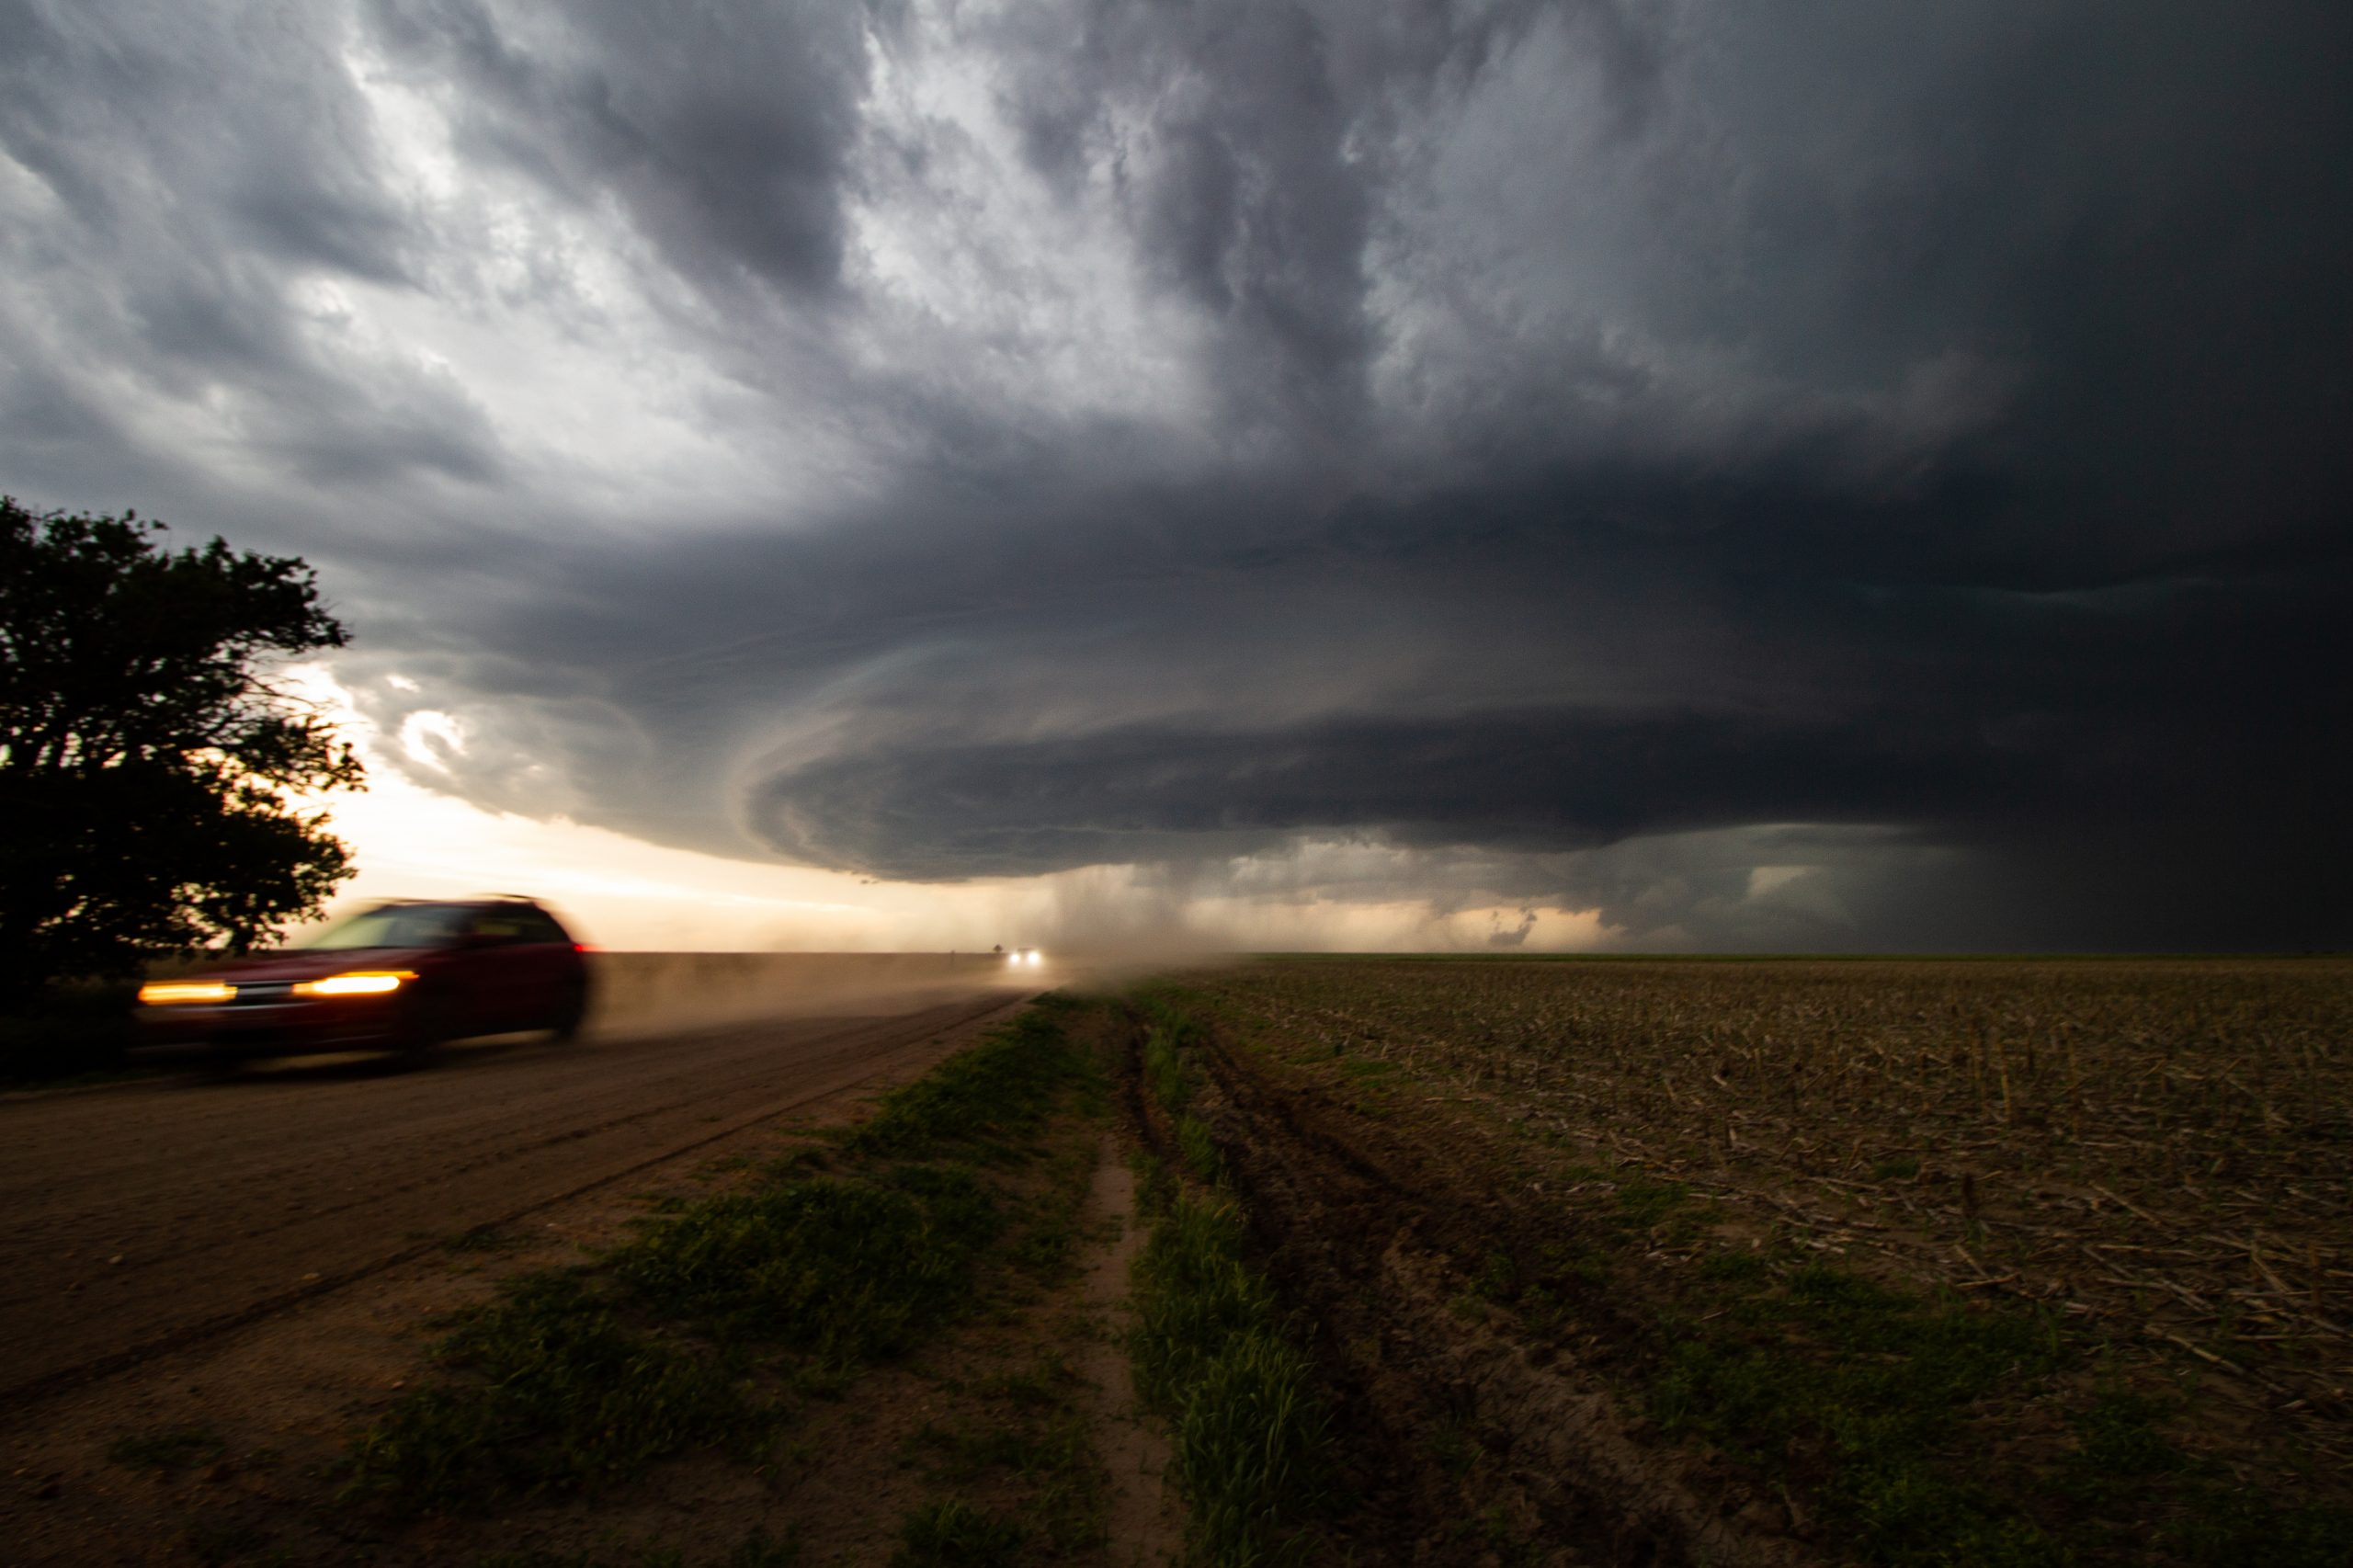 Image 1 supercell